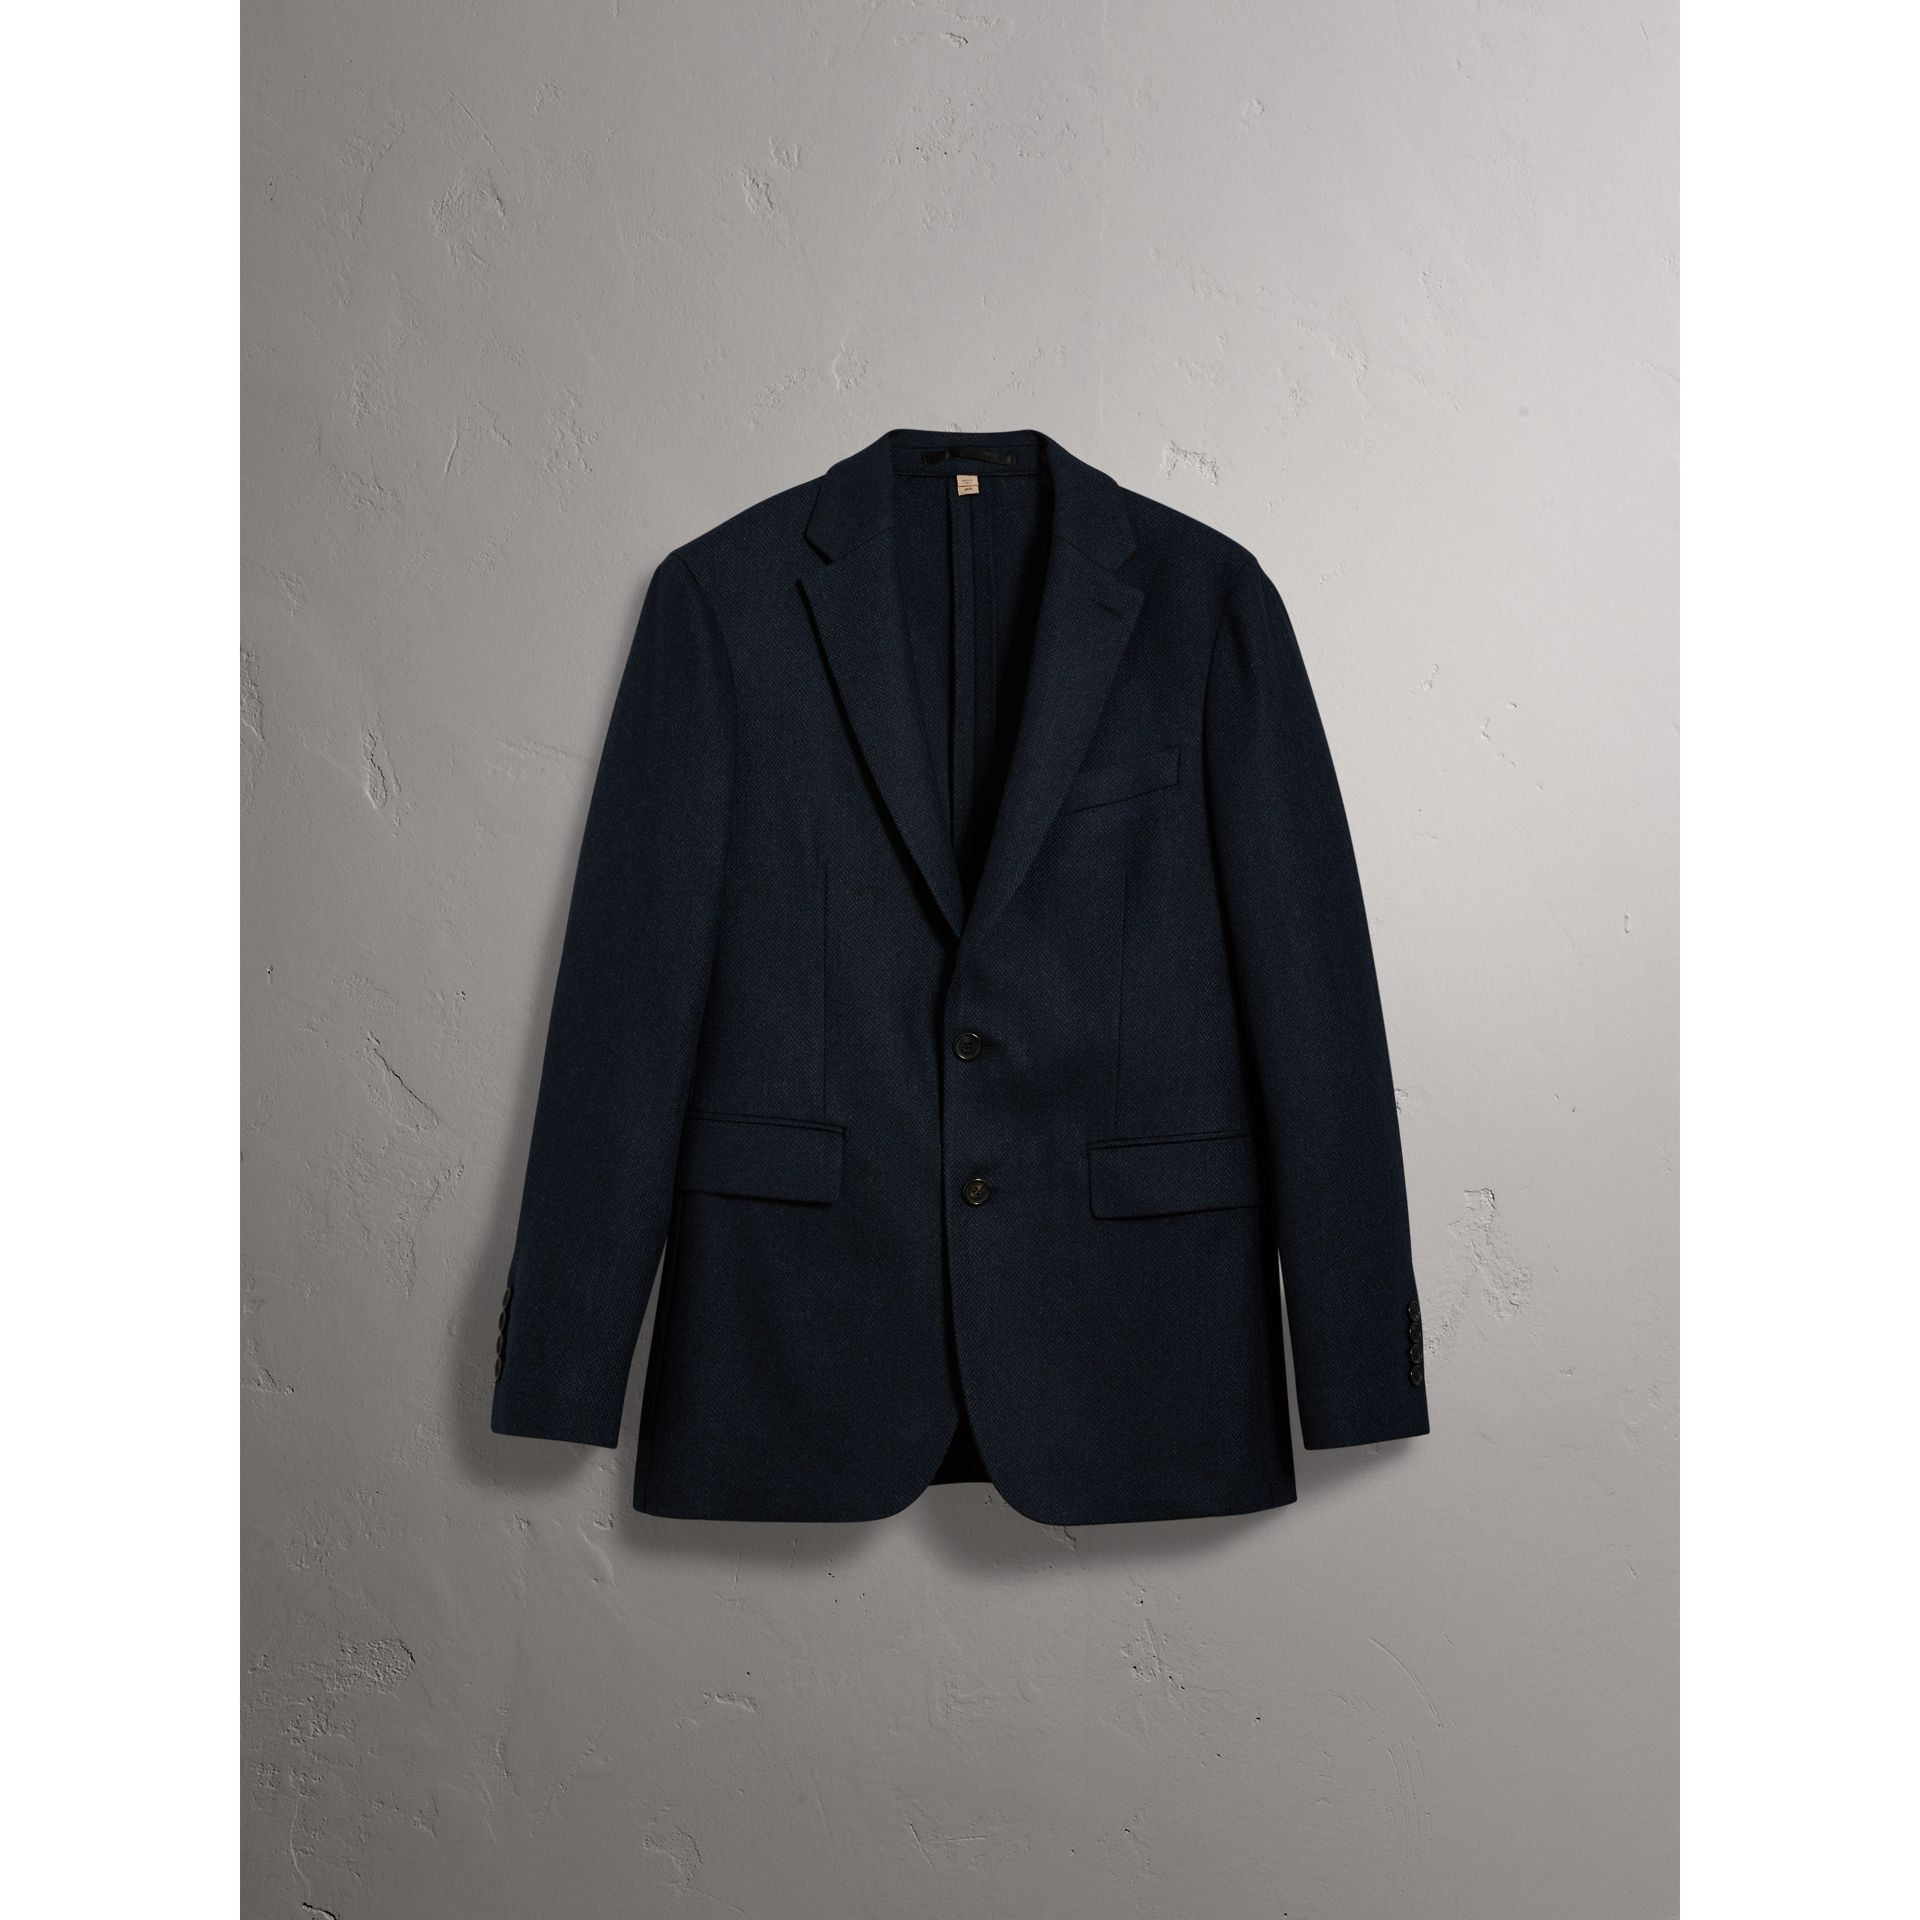 Soho Fit Herringbone Wool Tailored Jacket in Ink Blue/black - Men | Burberry United Kingdom - gallery image 2